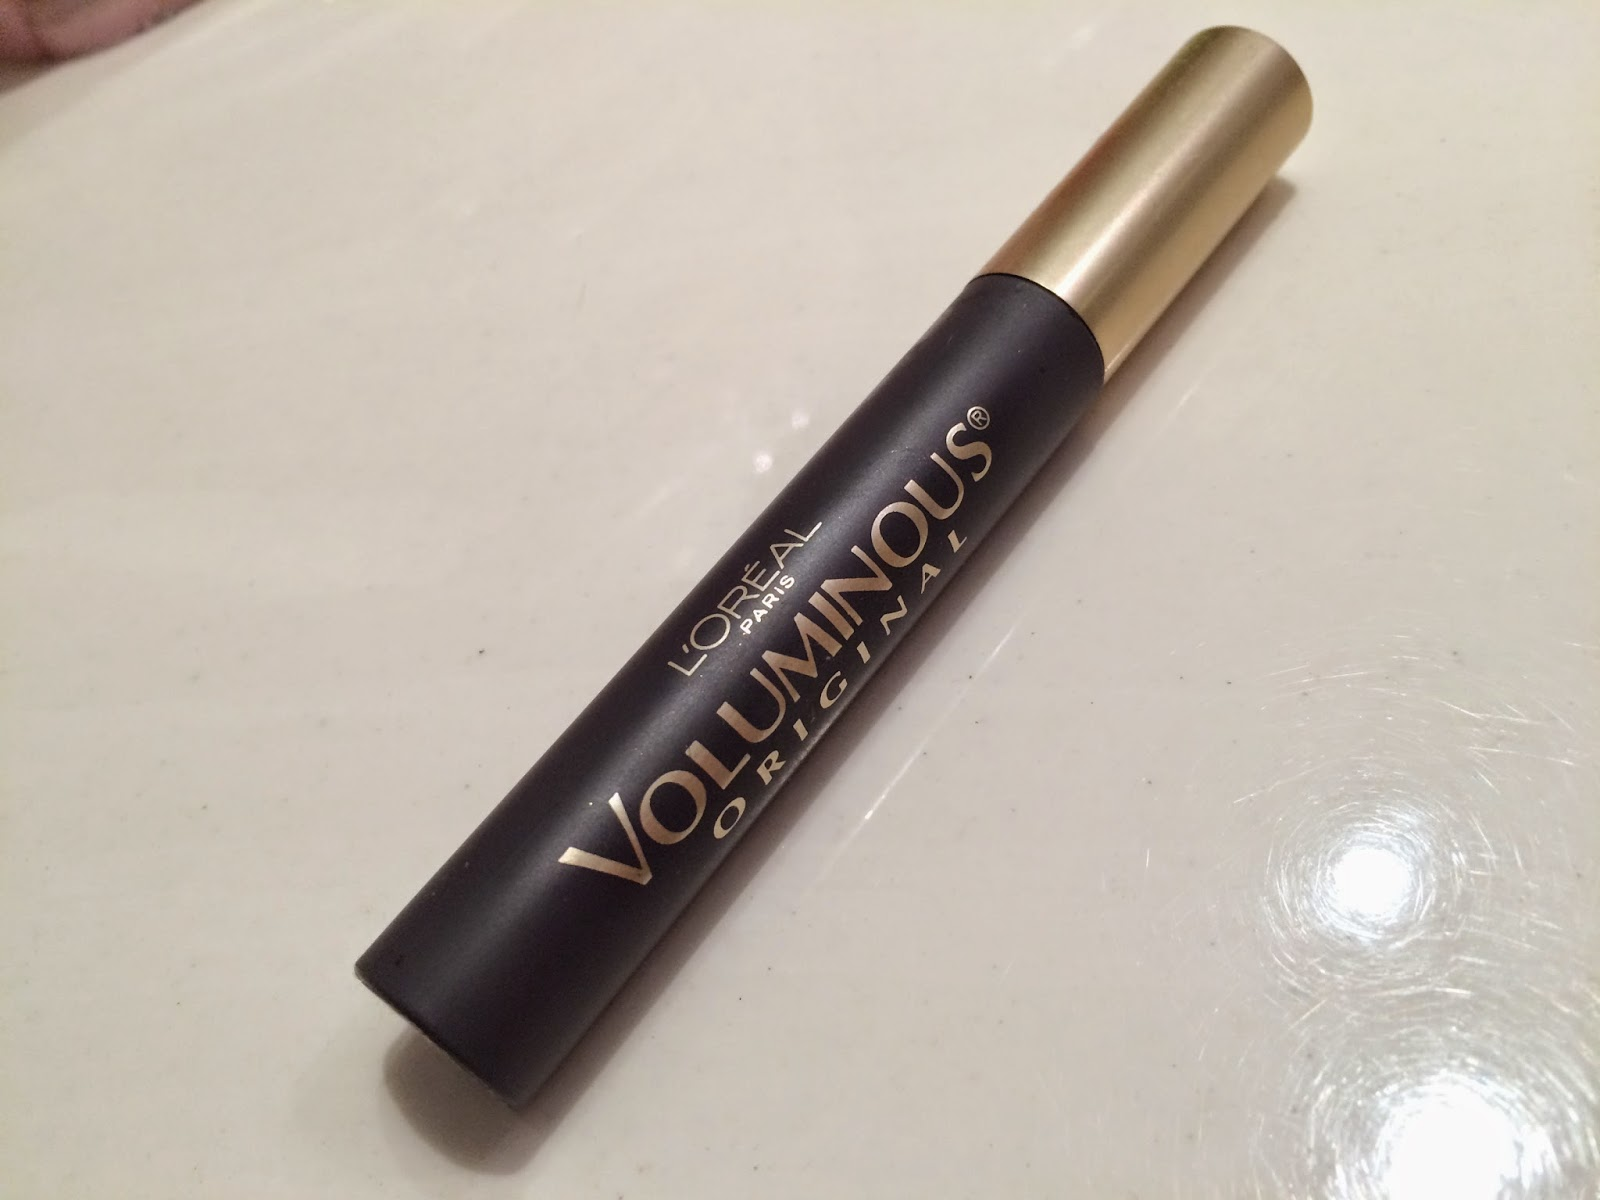 Loreal Voluminous Mascara Original Review